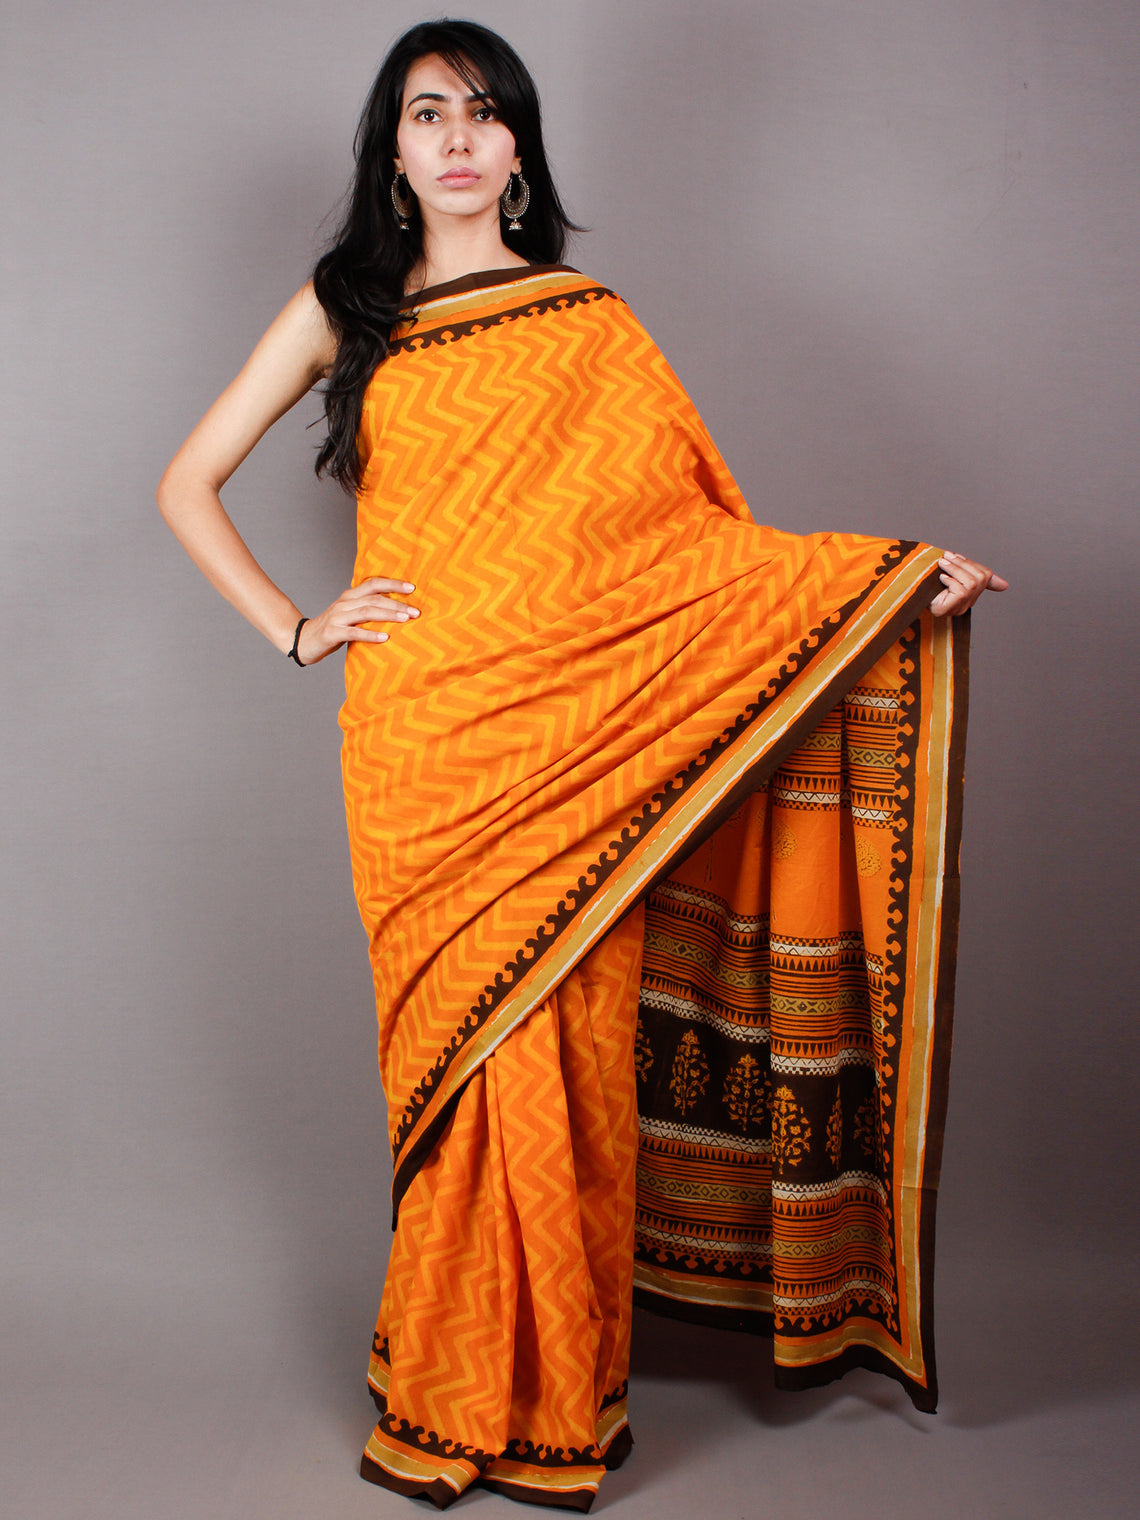 Orange Yellow Cotton Hand Block Printed Saree in Natural Colors With Brown Border - S03170486